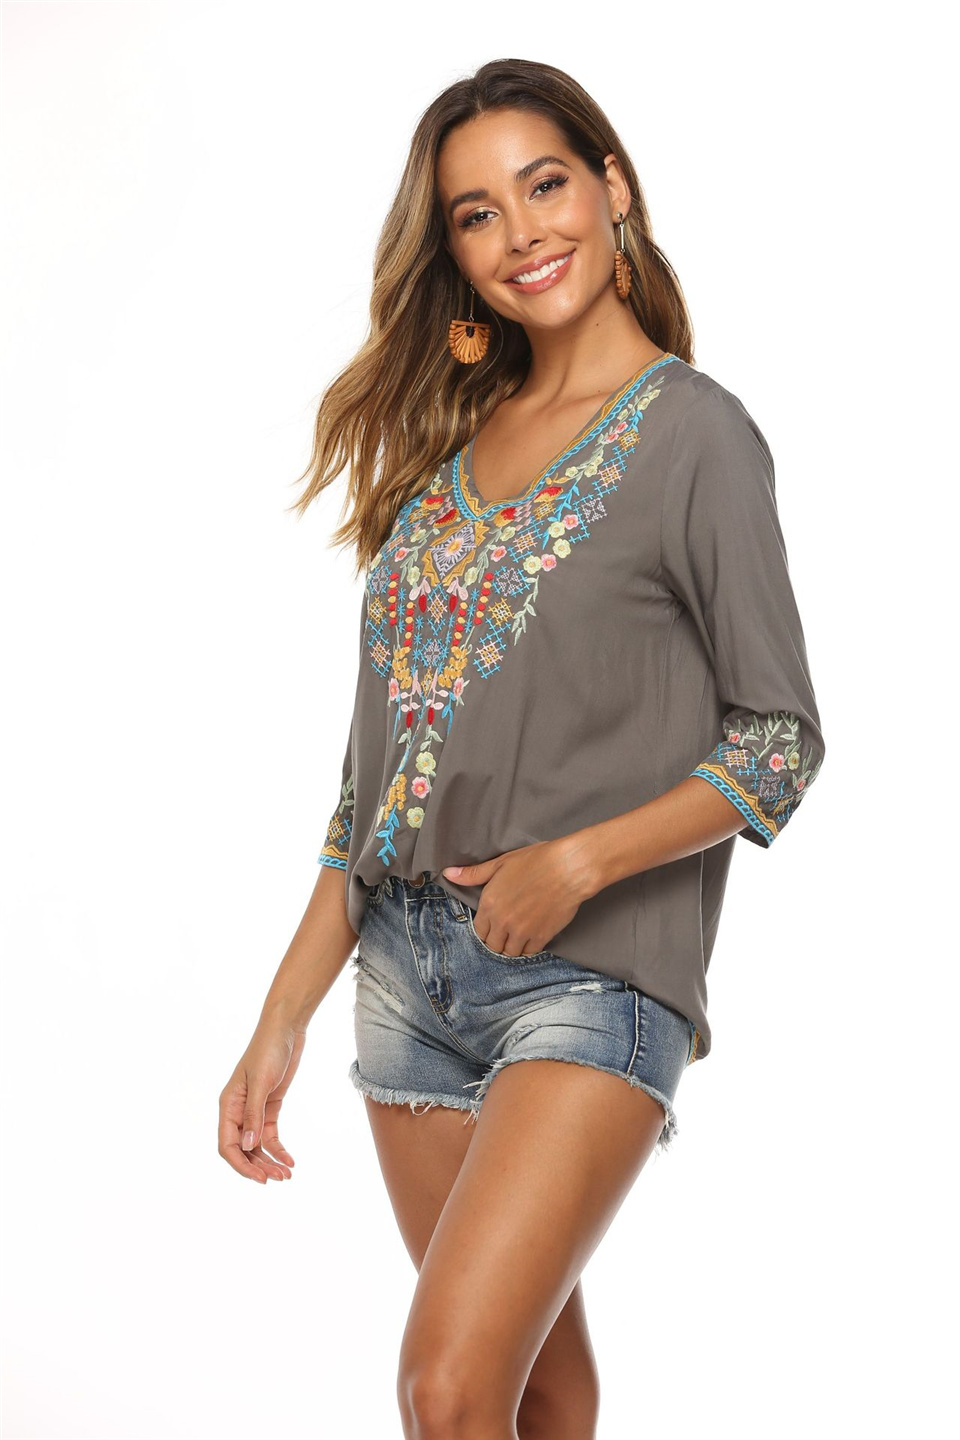 Stop118 Women's Blouses USD 5